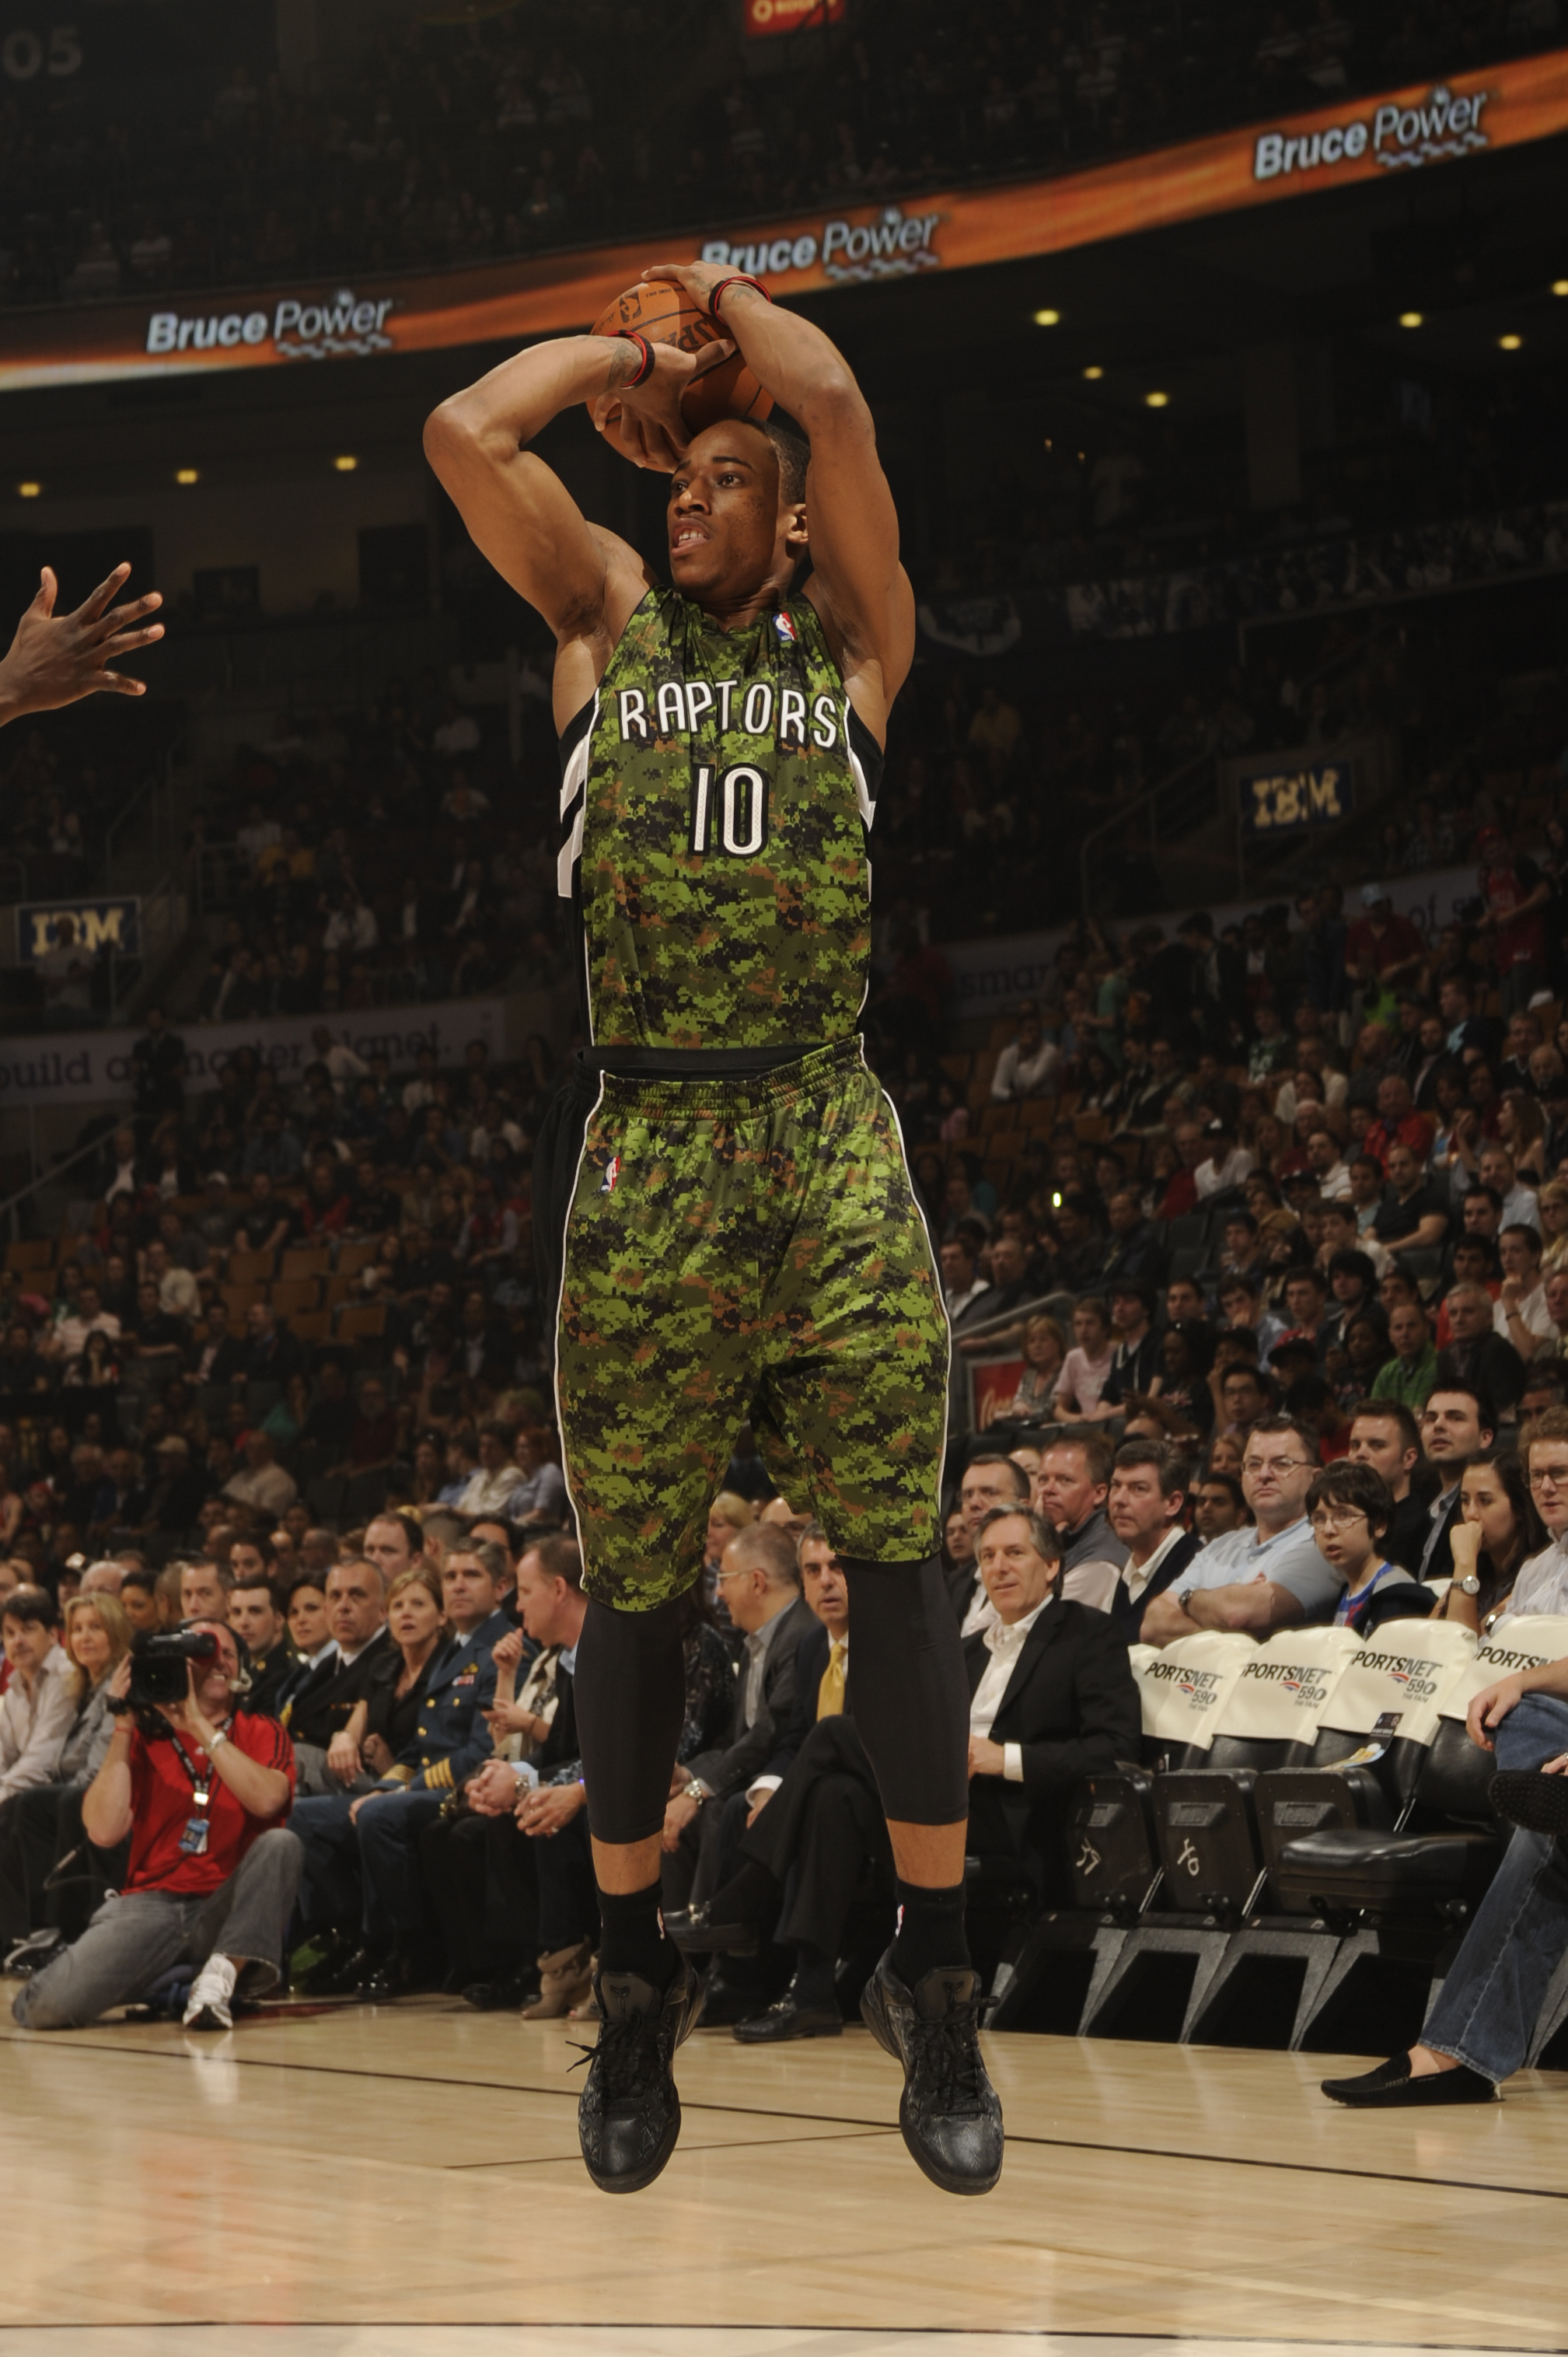 Anyone in the military should be offended by the awful use of the camouflage pattern on these Raptors jerseys. We're willing to bet that the players wish they could just blend in with their surroundings instead of being seen wearing these.